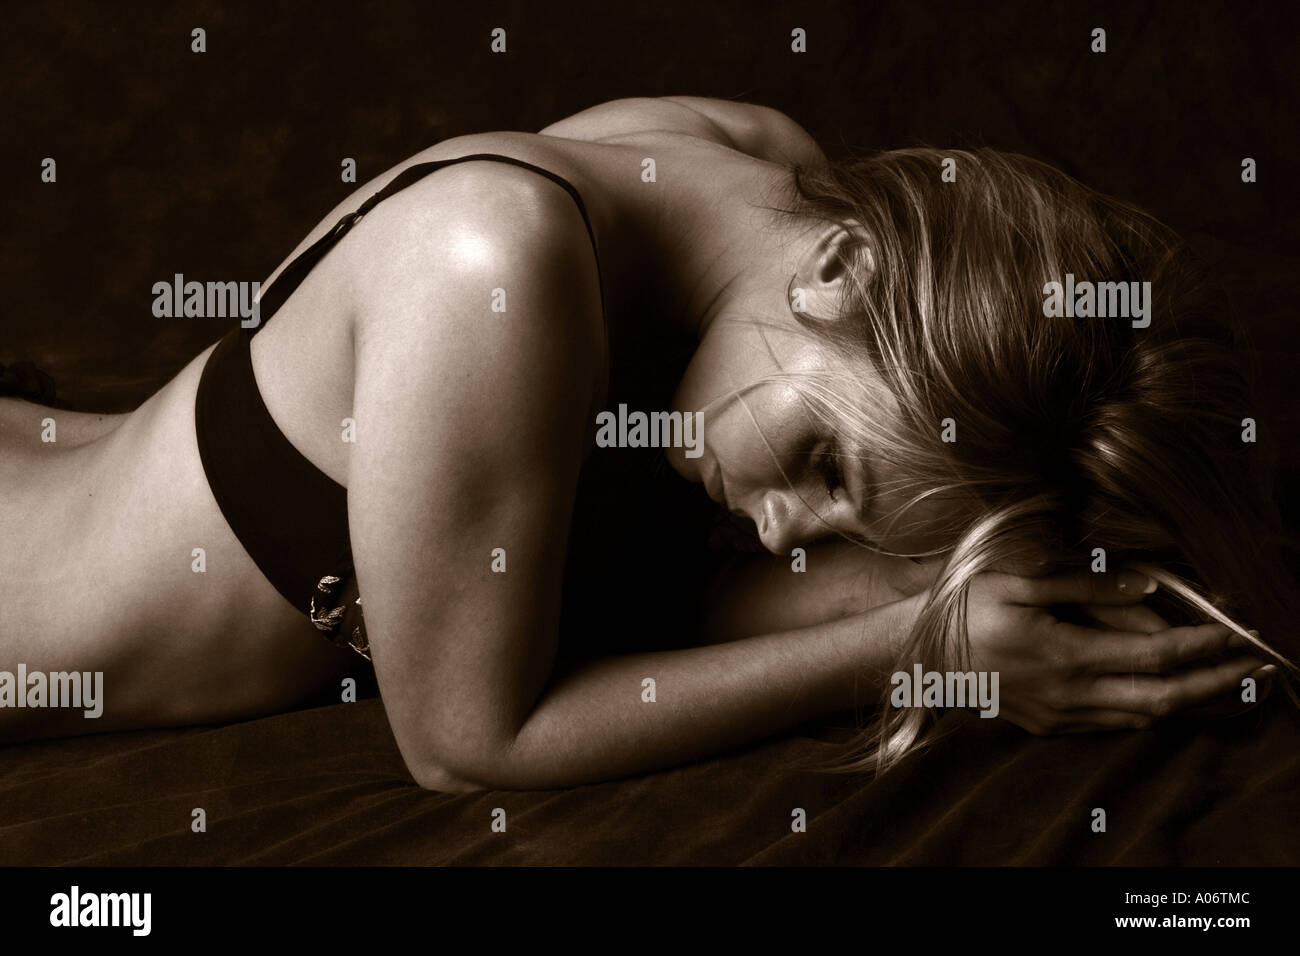 Girl Laying Face Down with Her Head on Her Hands - Stock Image